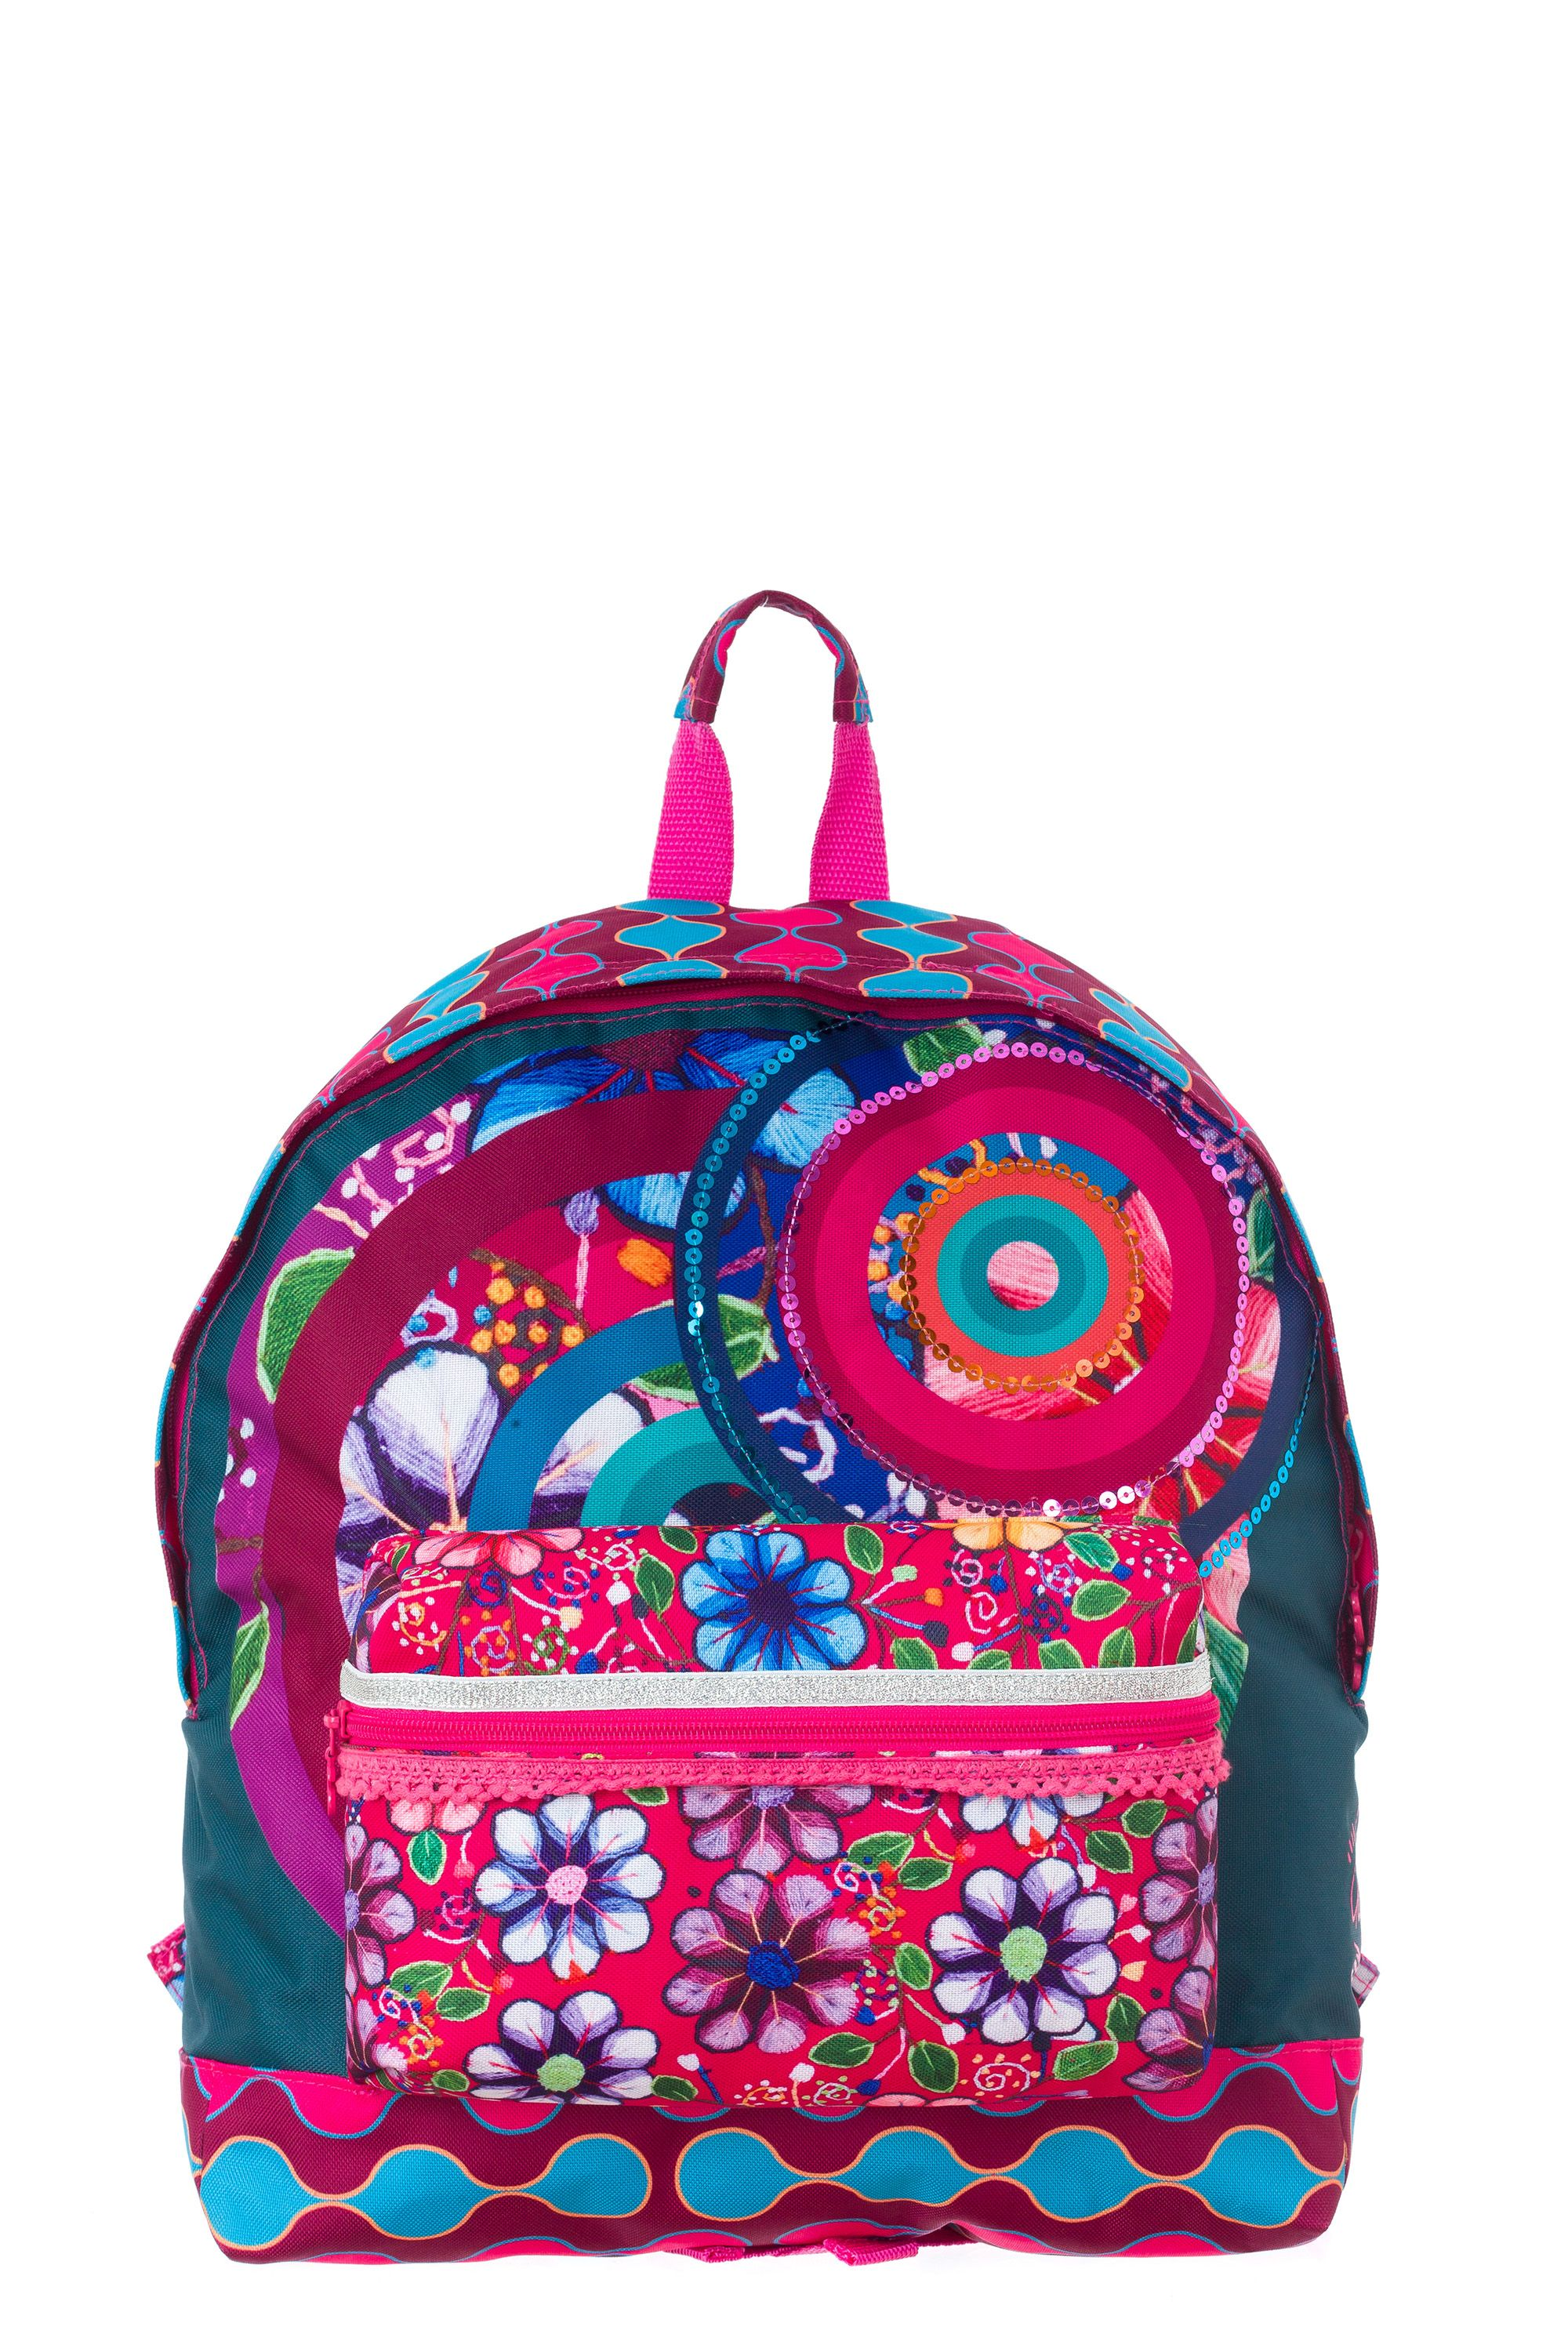 Girls kara backpack